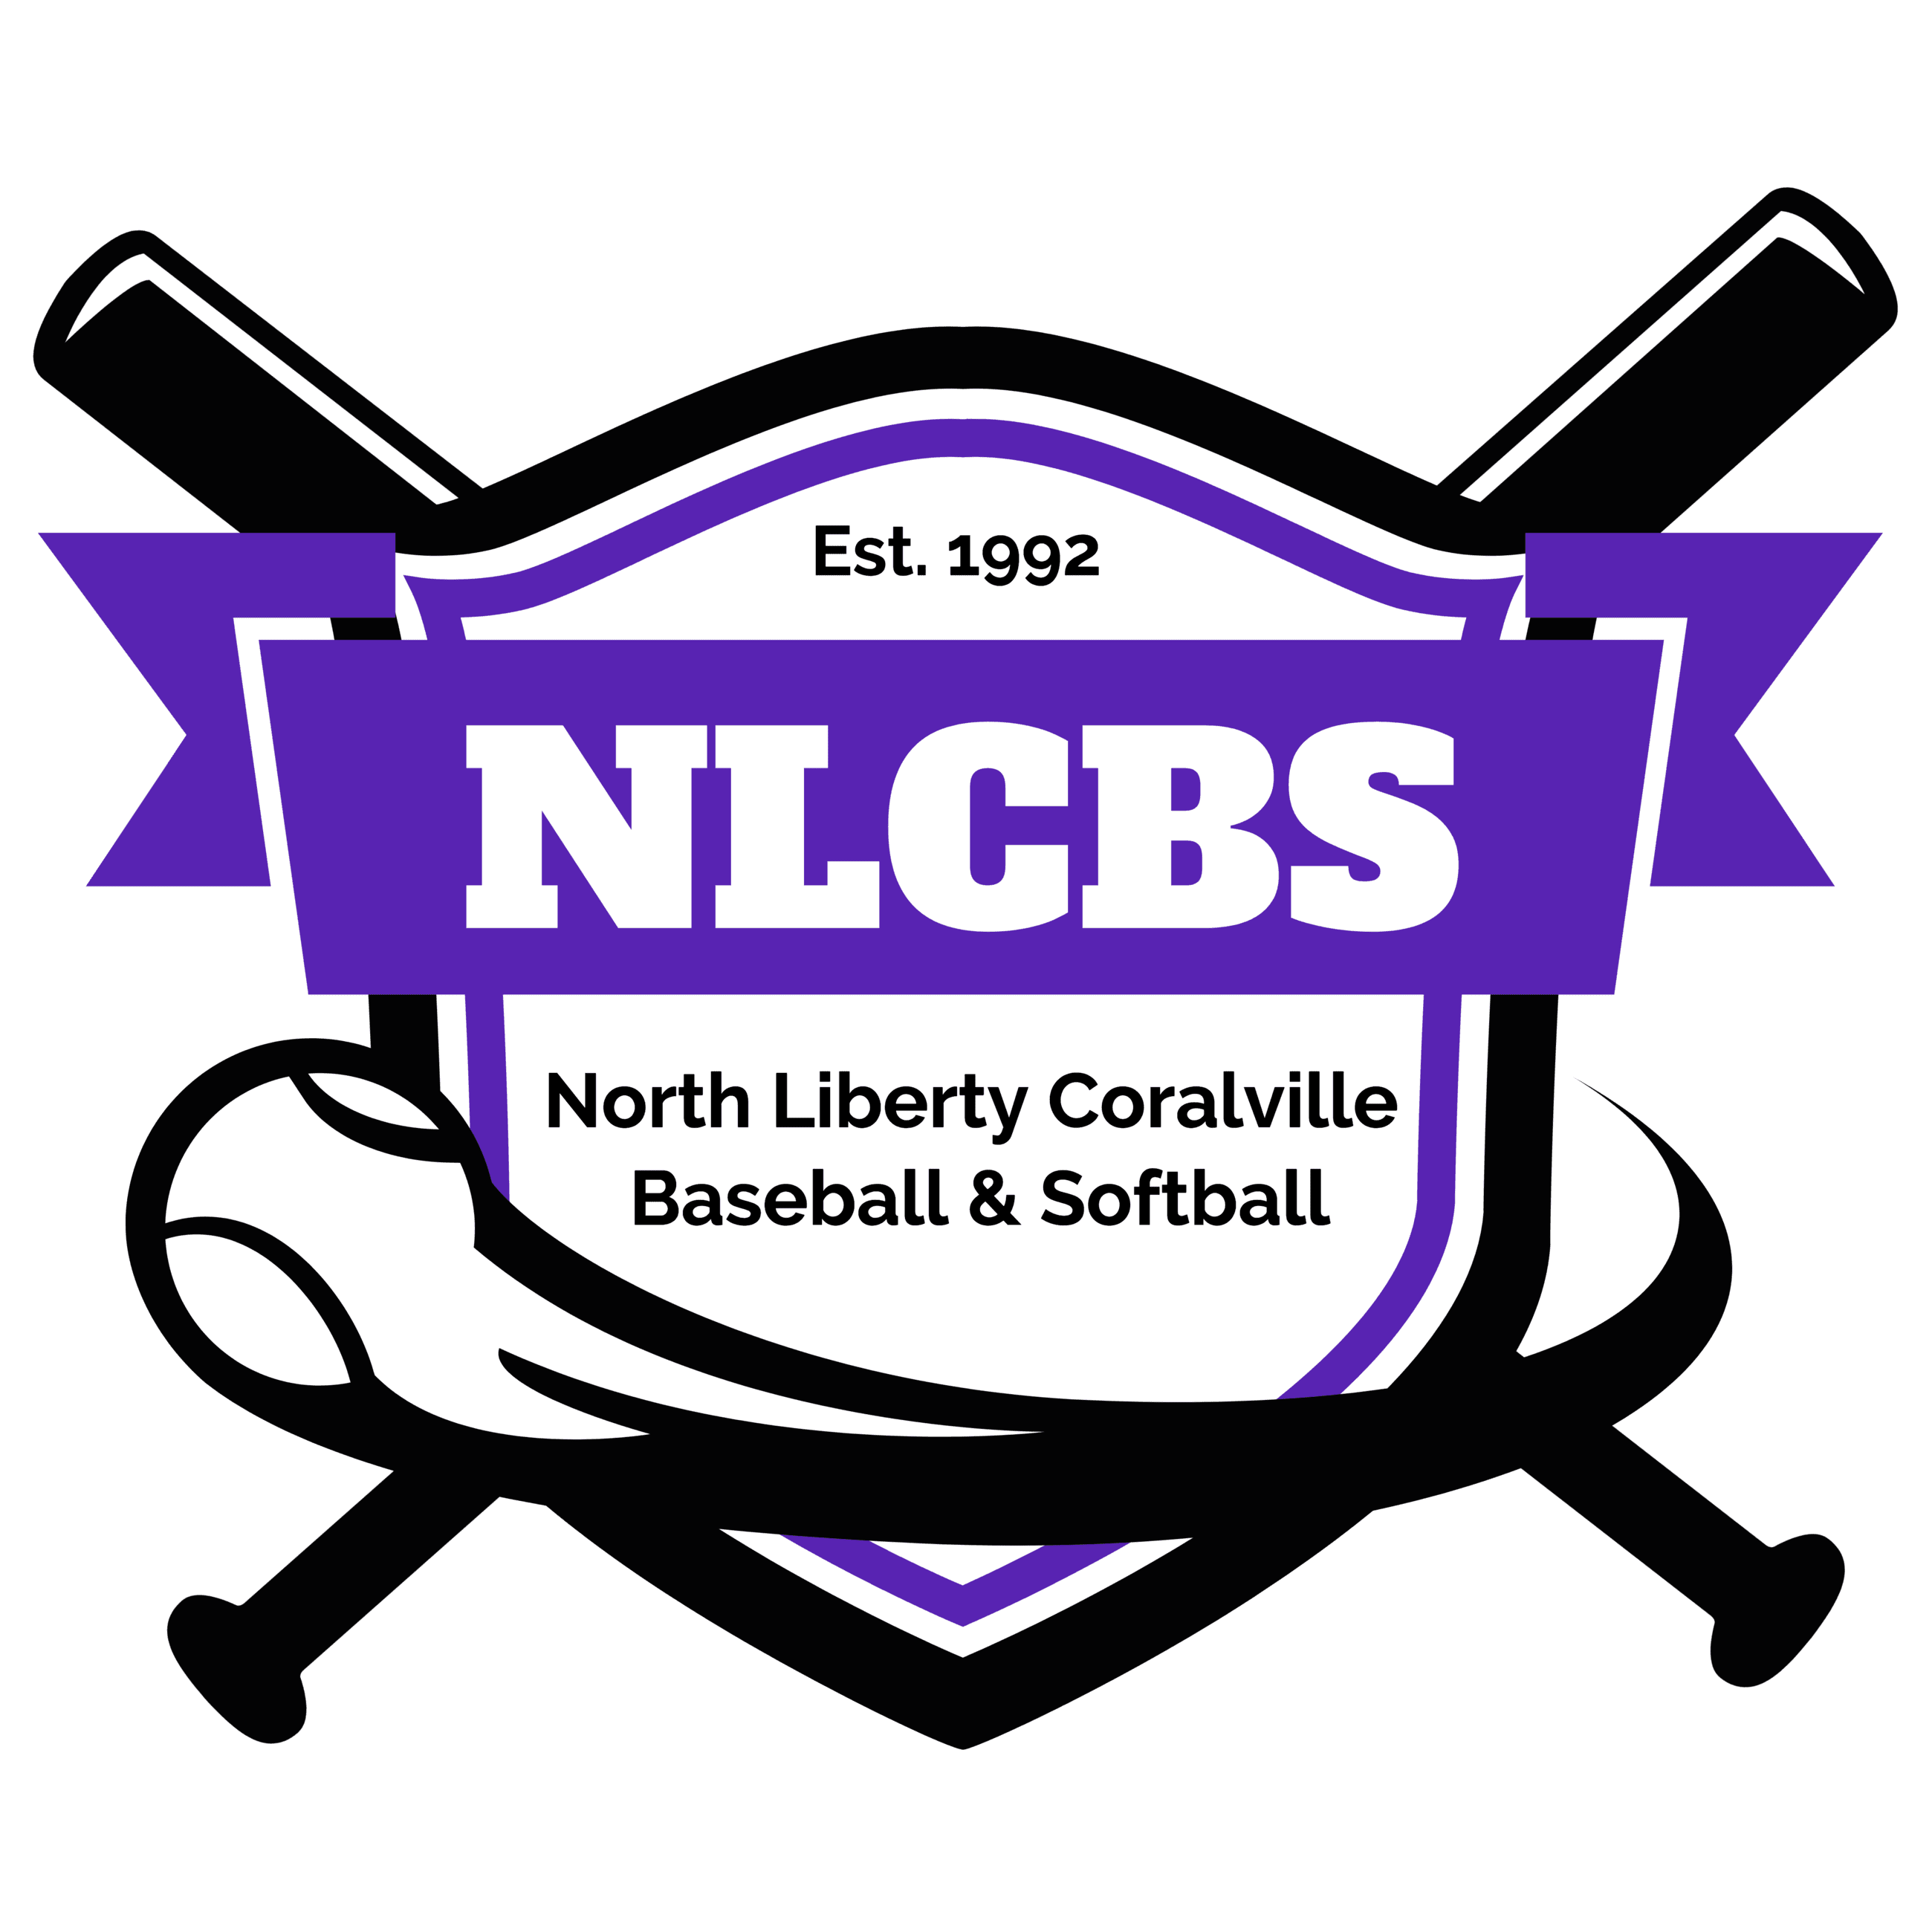 NLCBS North Liberty Cvl Baseball Softball logo-transparent